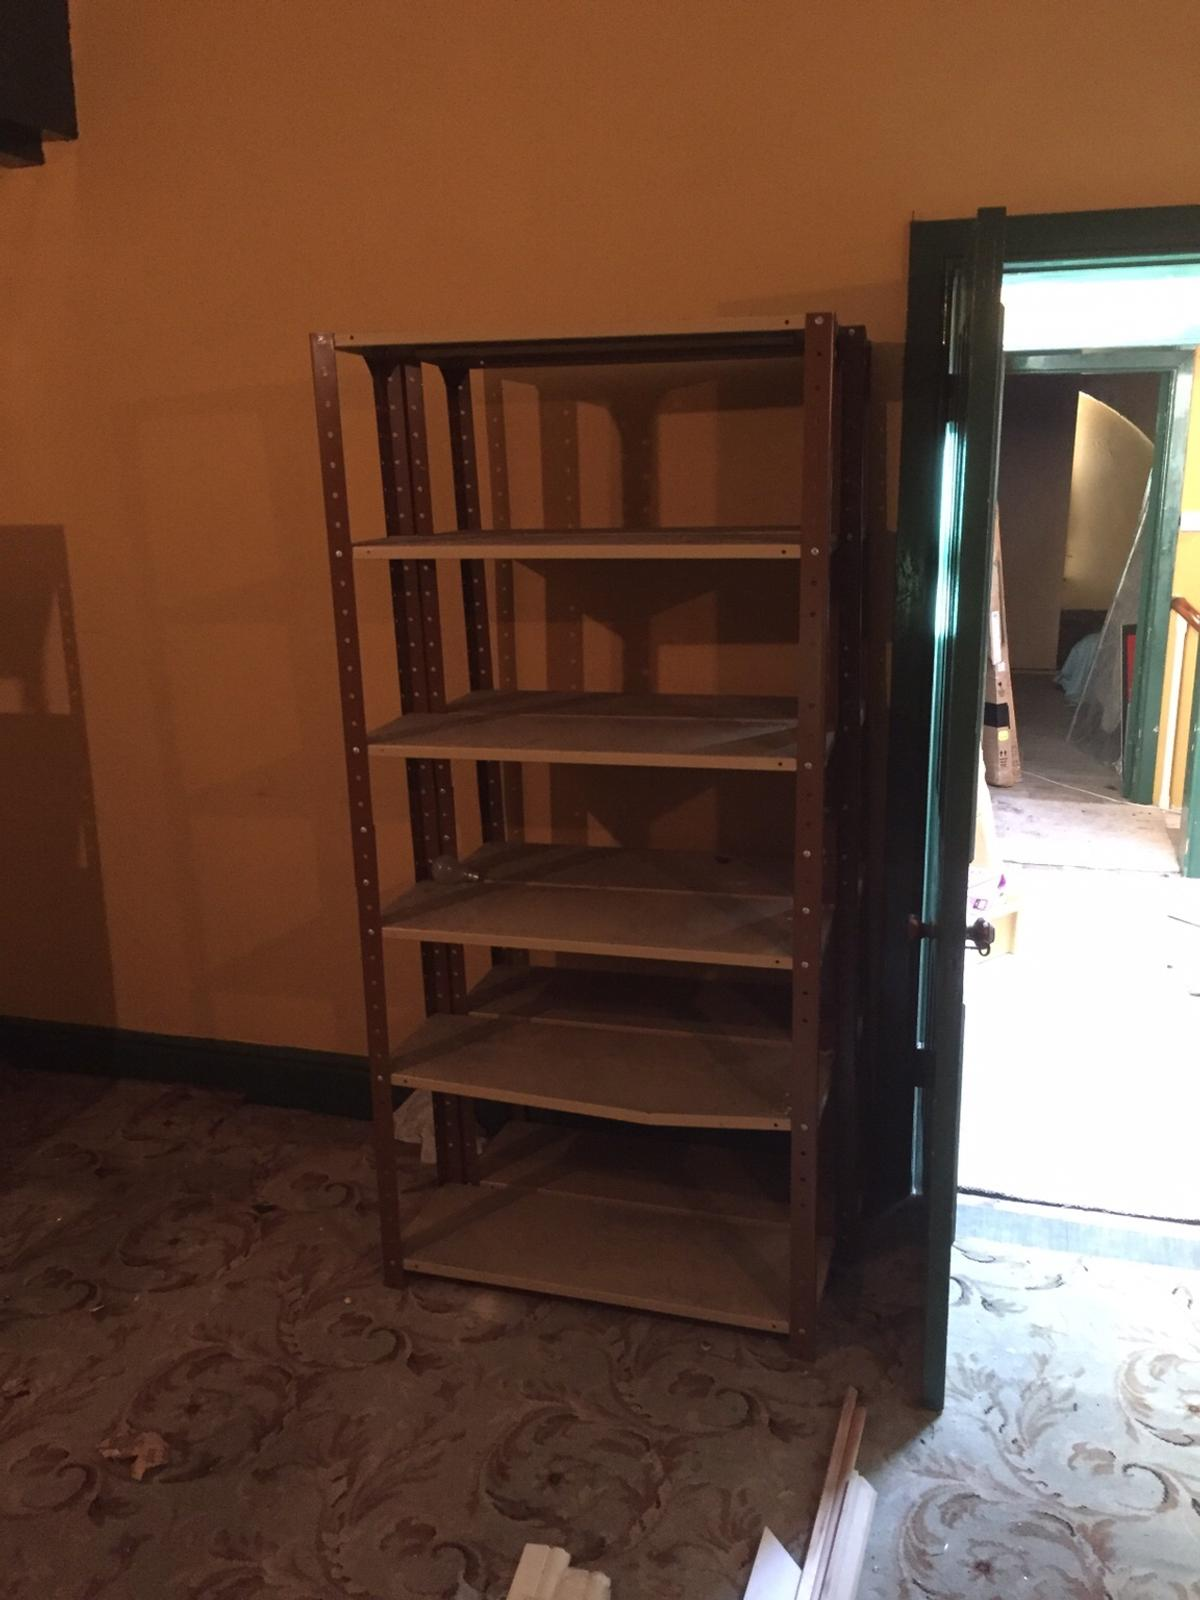 There are 11 units in total. These are substantial metal racking units that can be used in a garage or spare room to store items. They can be dismantled . 9 of the units are 165cm h by 70cmw  2 of the units are 185cm h by 88cmw Buyer can collect or two units can be delivered at one time. Also buyer can dismantle if want to collect in a car.Price is for one unit.